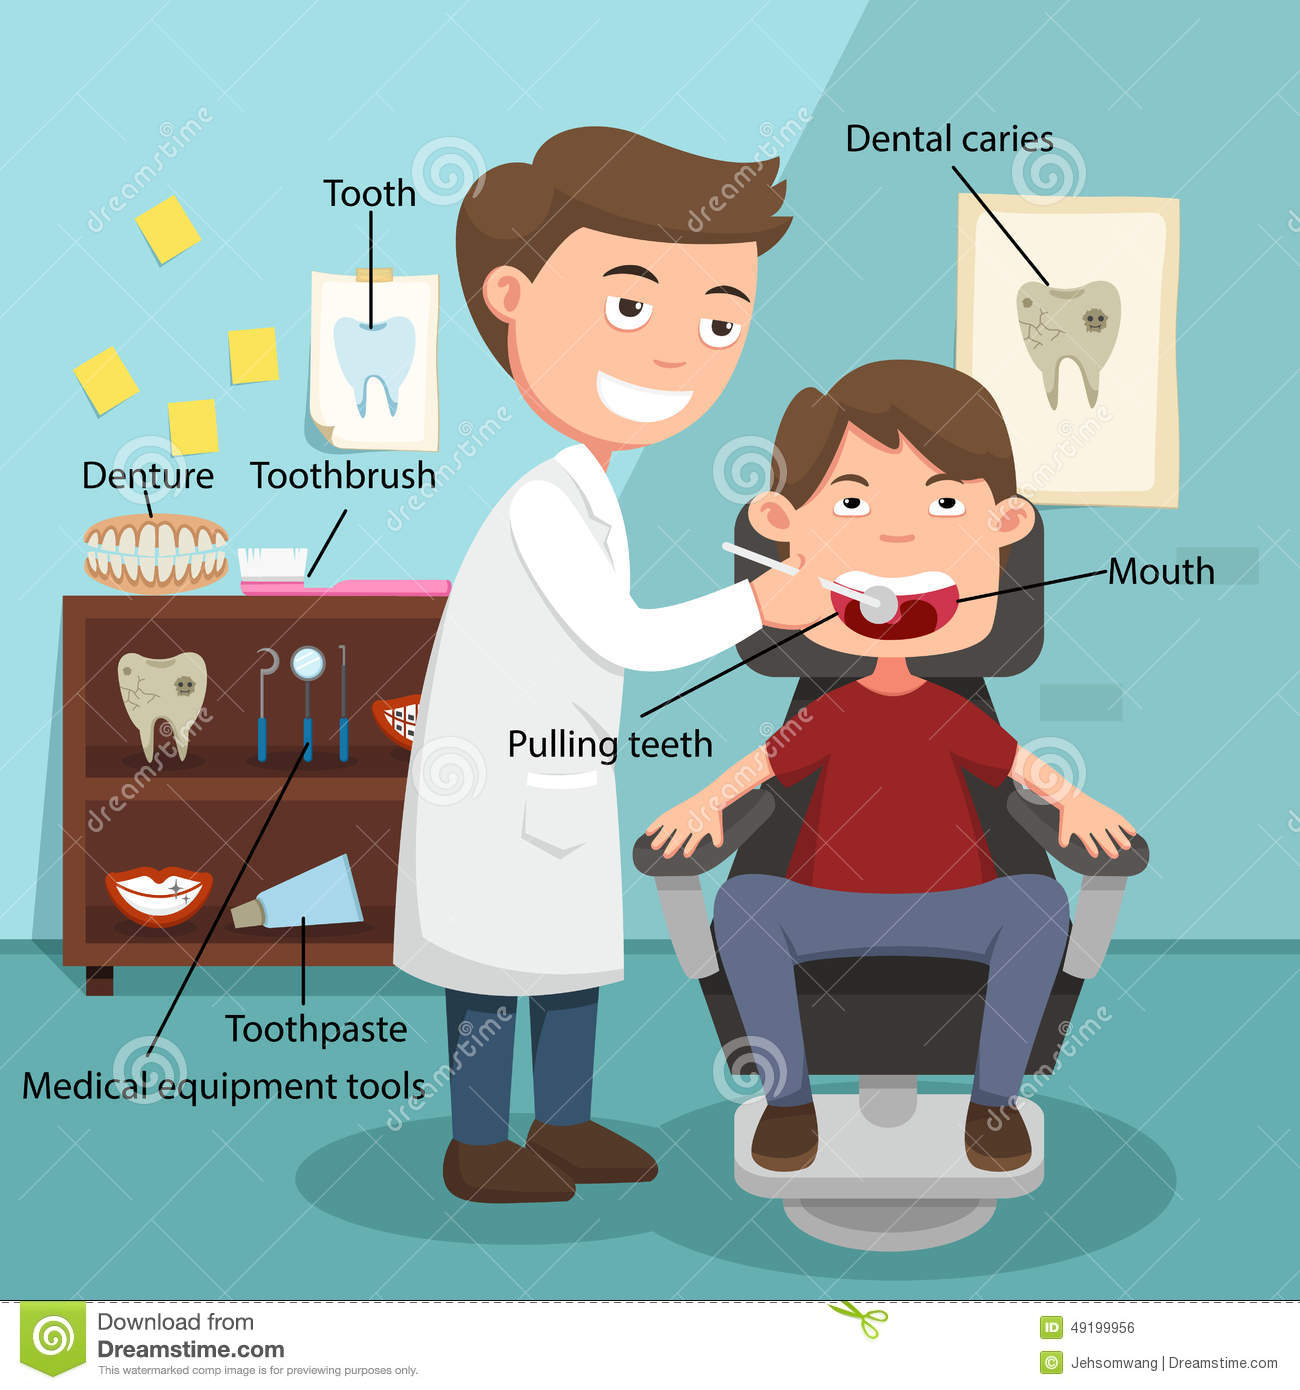 Stock Illustration Idea Doctor Performing Physical Examination Illustration Vocabulary Image49199956 likewise Strong Tooth Cartoon 599739680 as well Animated Mouth Cliparts in addition Mouth besides Assets. on cartoon smile mouth